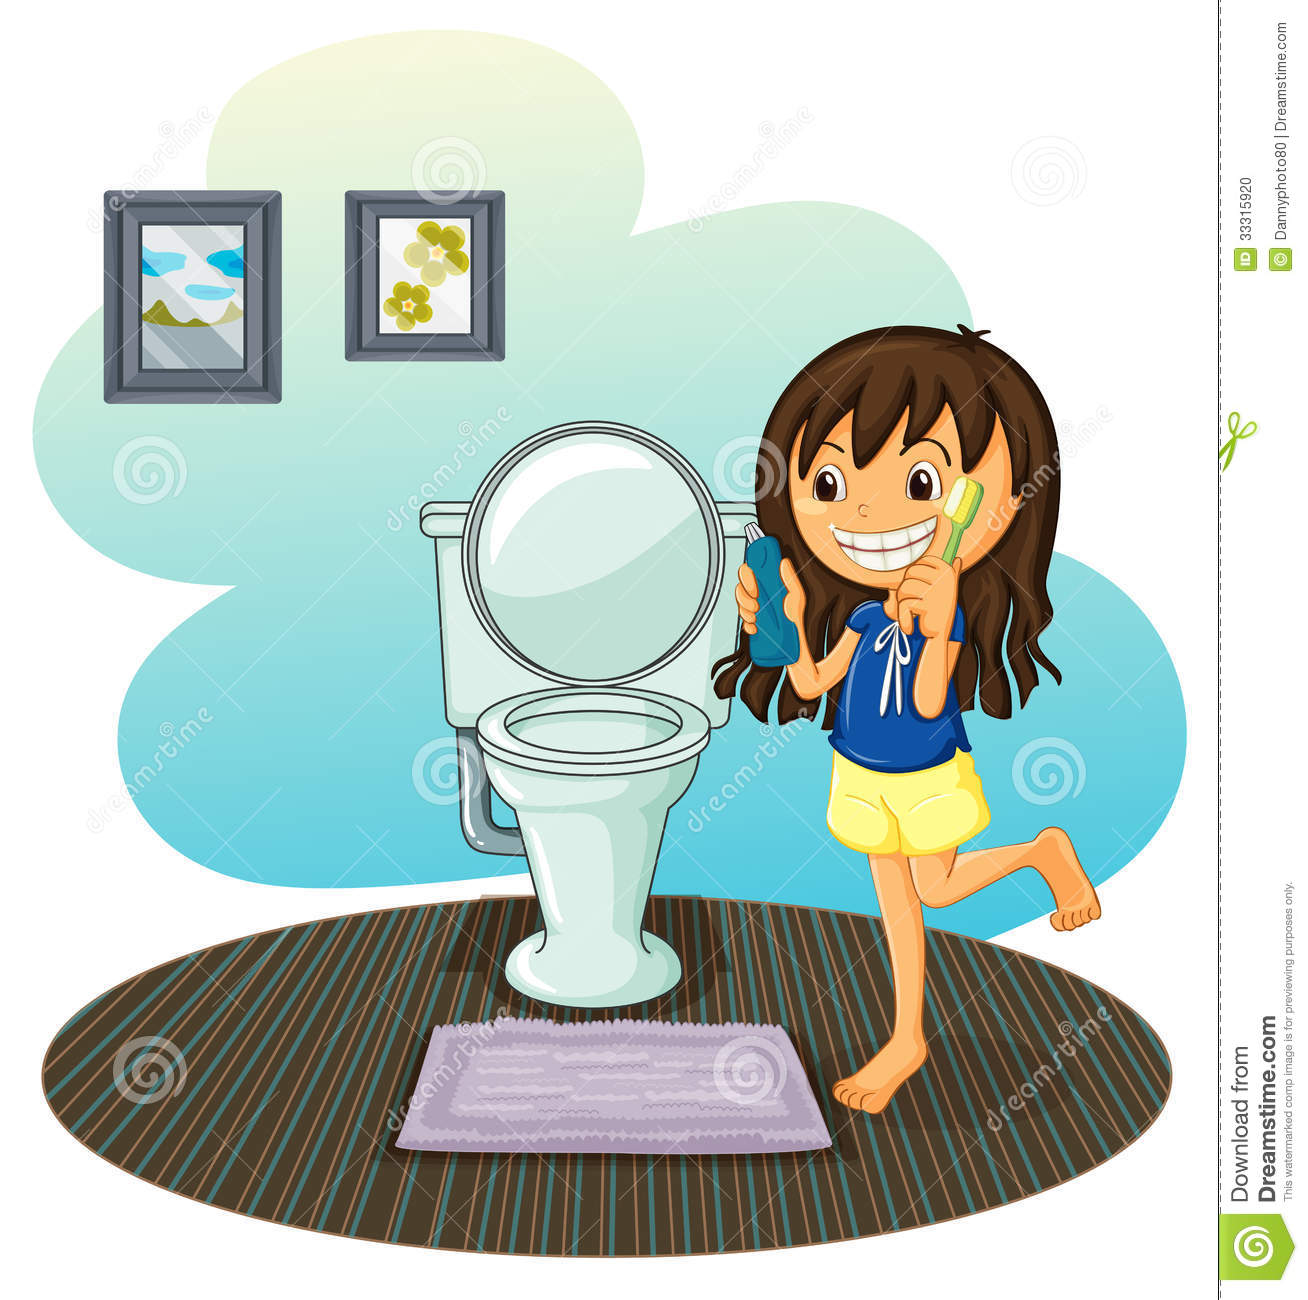 Cleaning with kids clipart svg royalty free download Kids Cleaning Bathroom Clipart | Clipart Panda - Free Clipart Images svg royalty free download